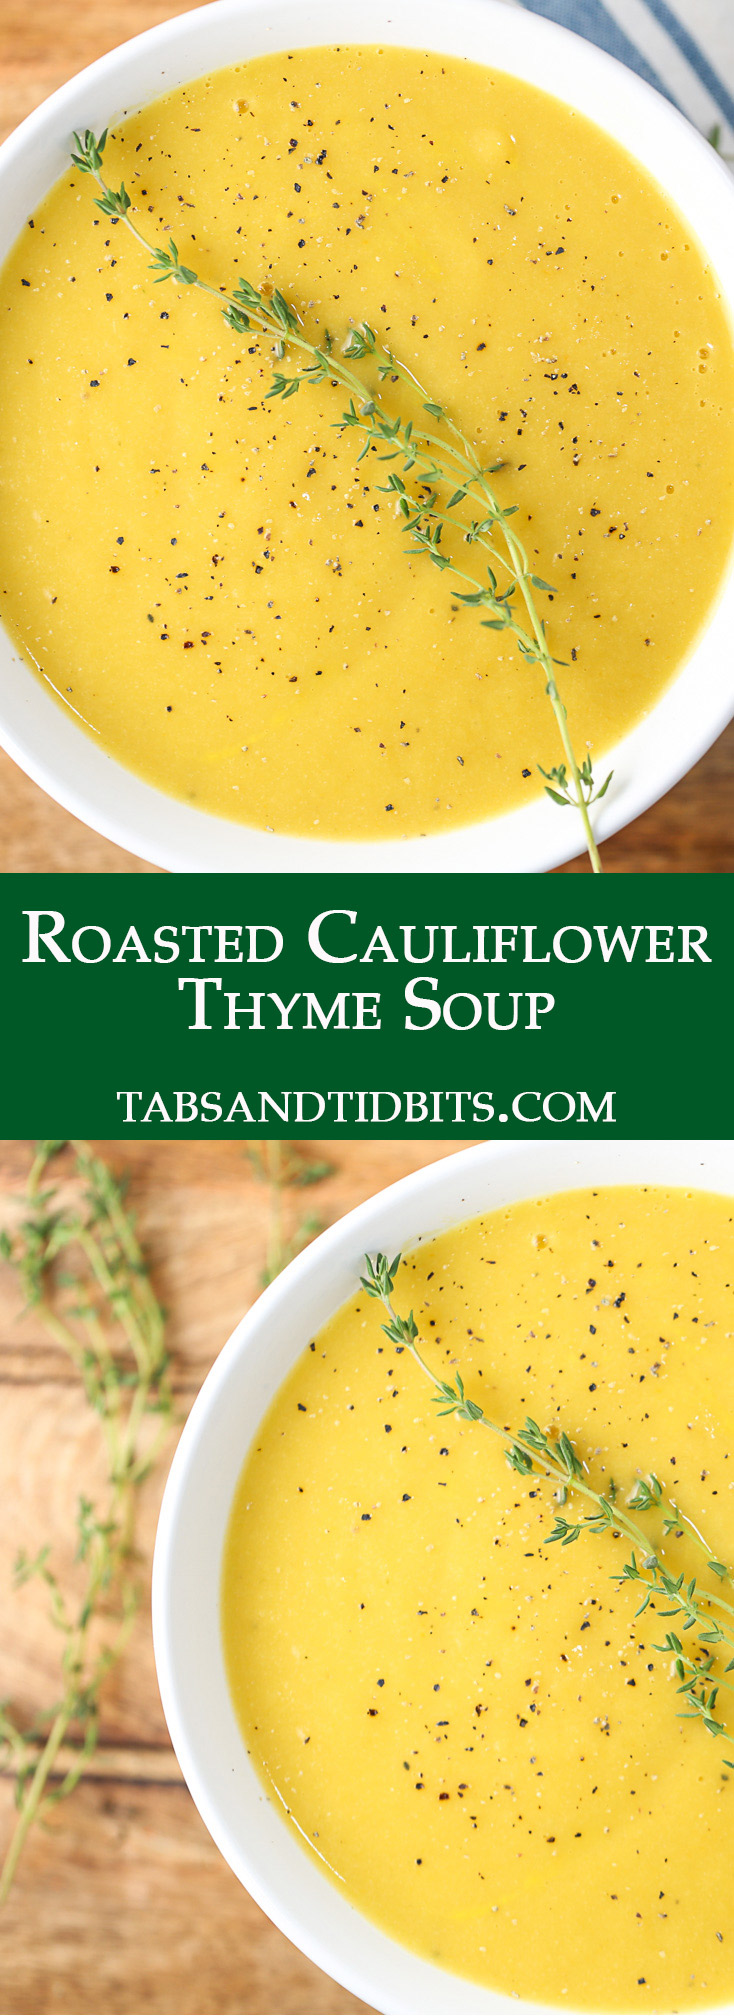 Roasted cauliflower and veggies are pureed intoa nutritious and satisfying vegan soup!